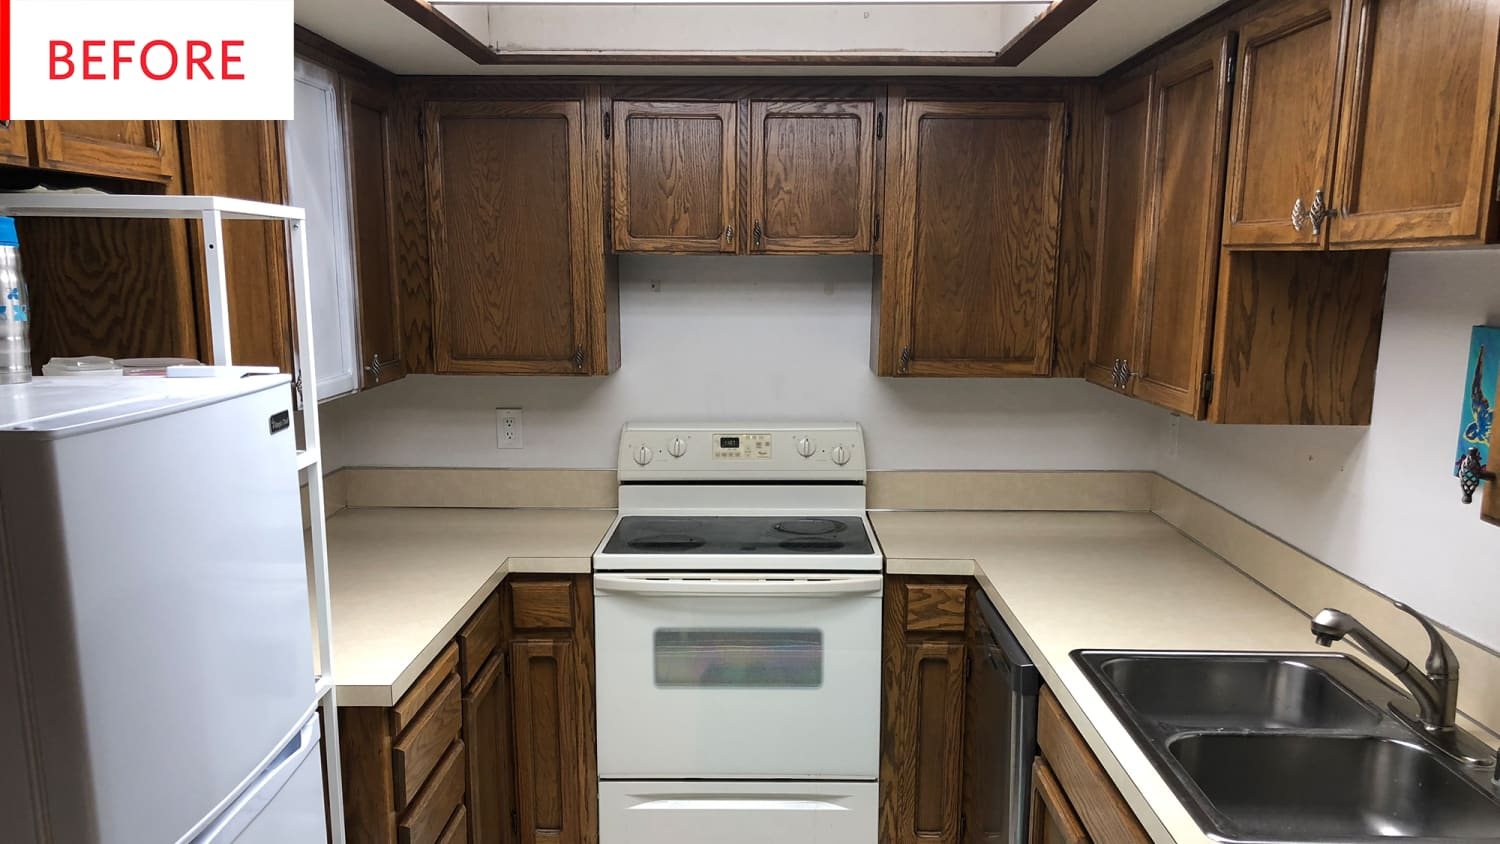 Budget Diy Kitchen Remodel Before After Photos Apartment Therapy